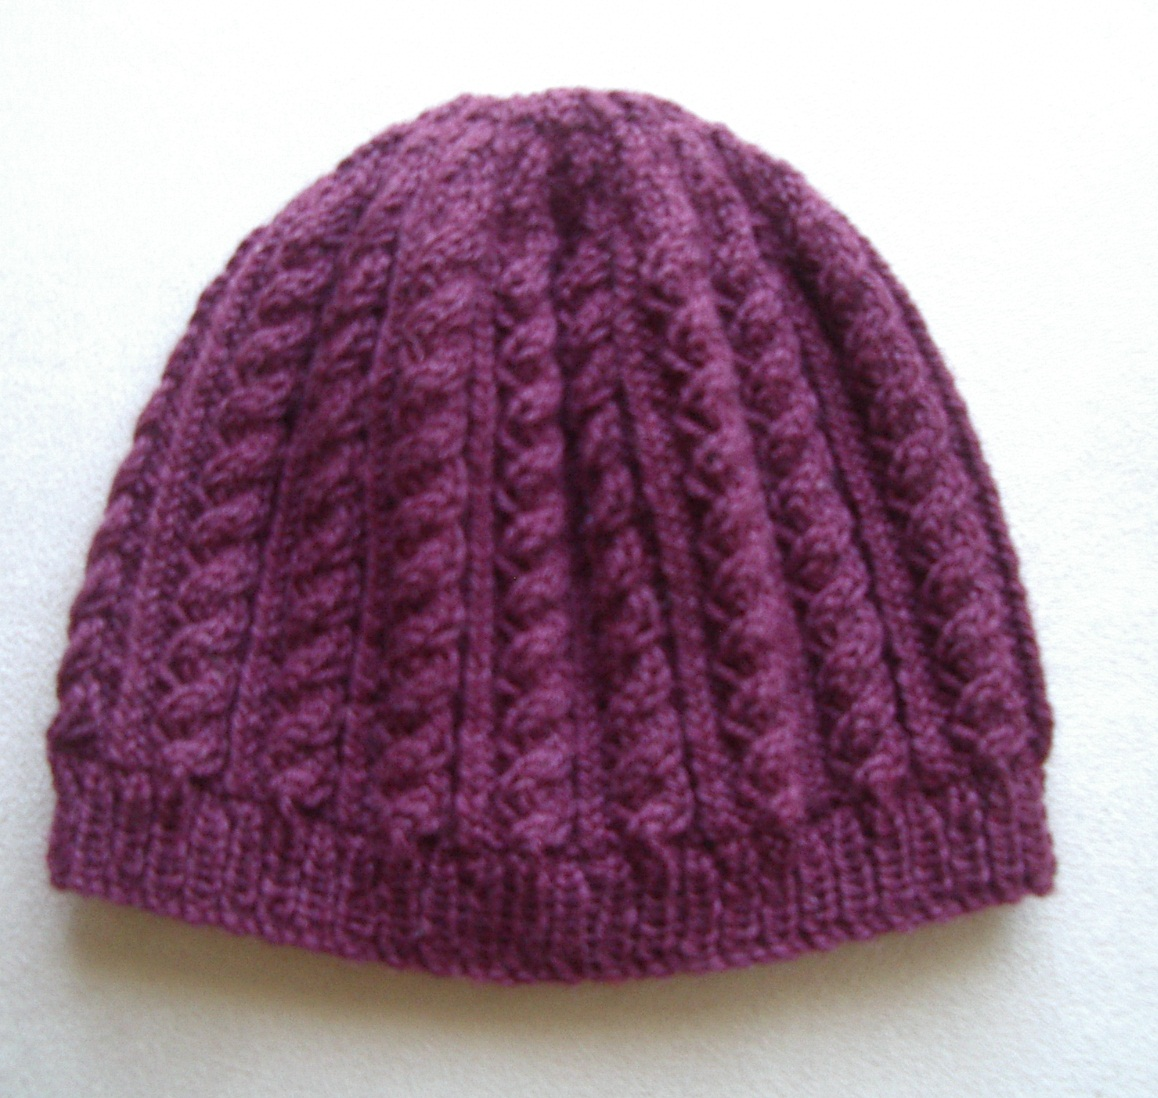 Knitting Pattern For Beanie : Knitting Patterns Online - Knitted Beanie, Scarf and ...